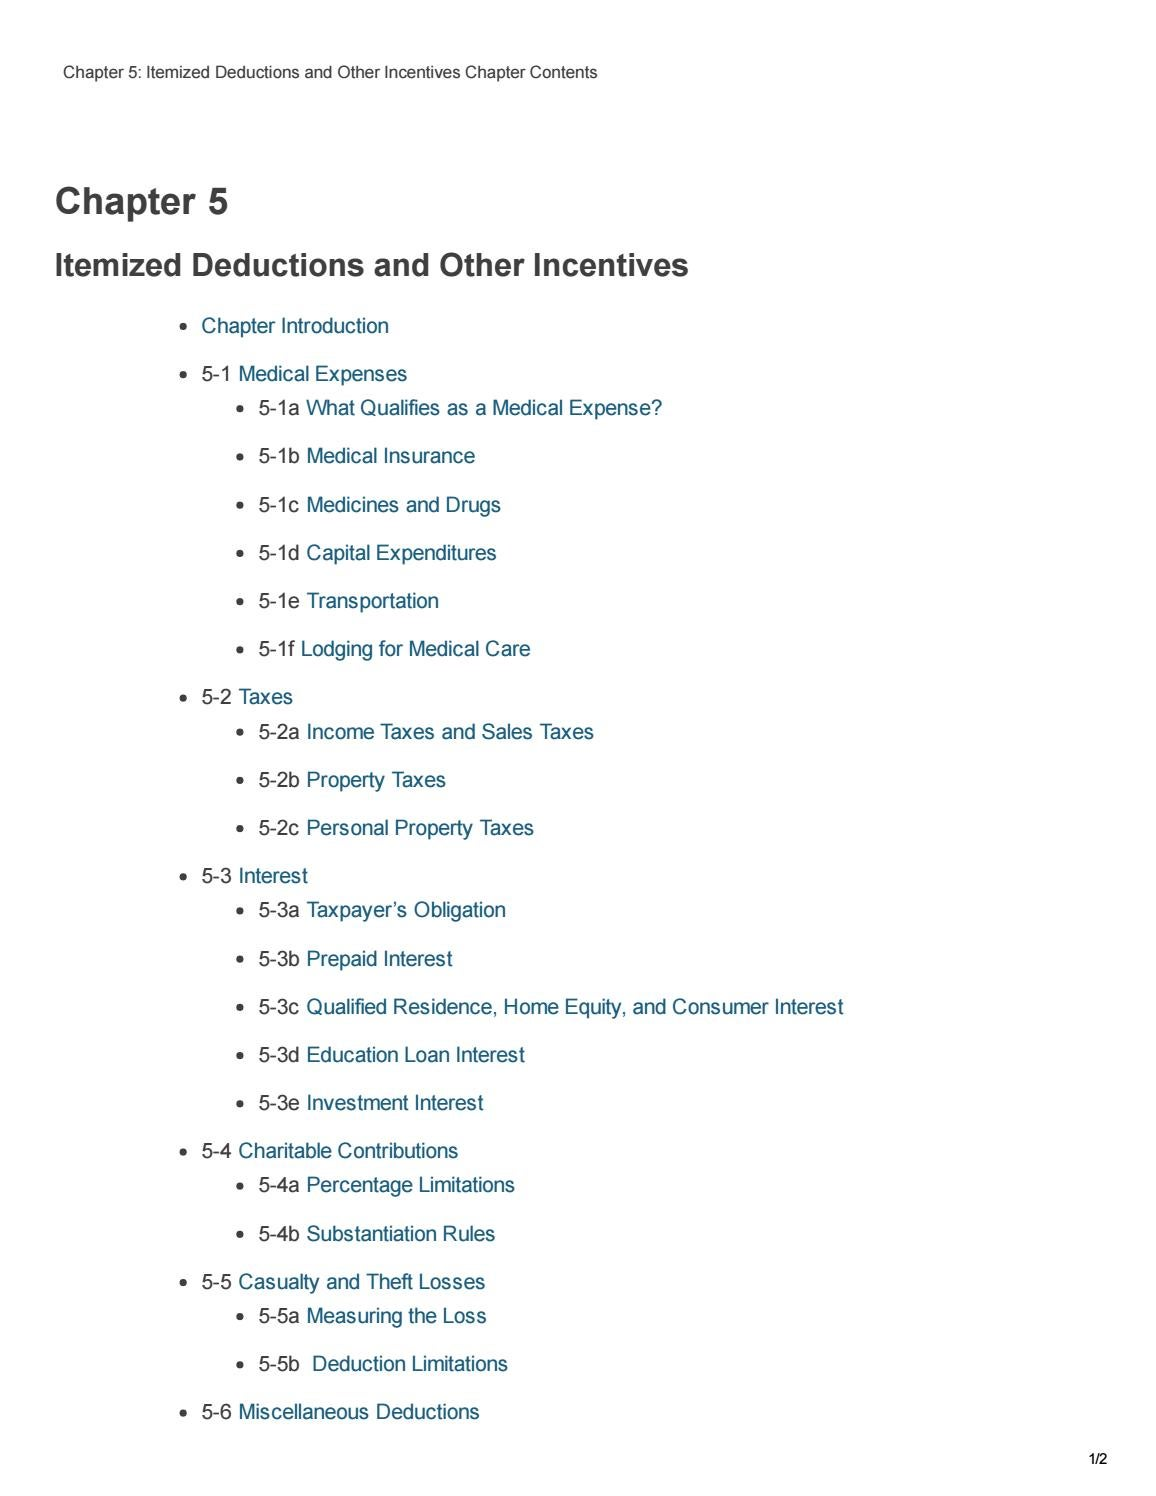 Worksheets Federal Carryover Worksheet worksheets federal carryover worksheet eihseba com free 2017 income tax fundamentals chapter 5 by unicorndreams8 issuu